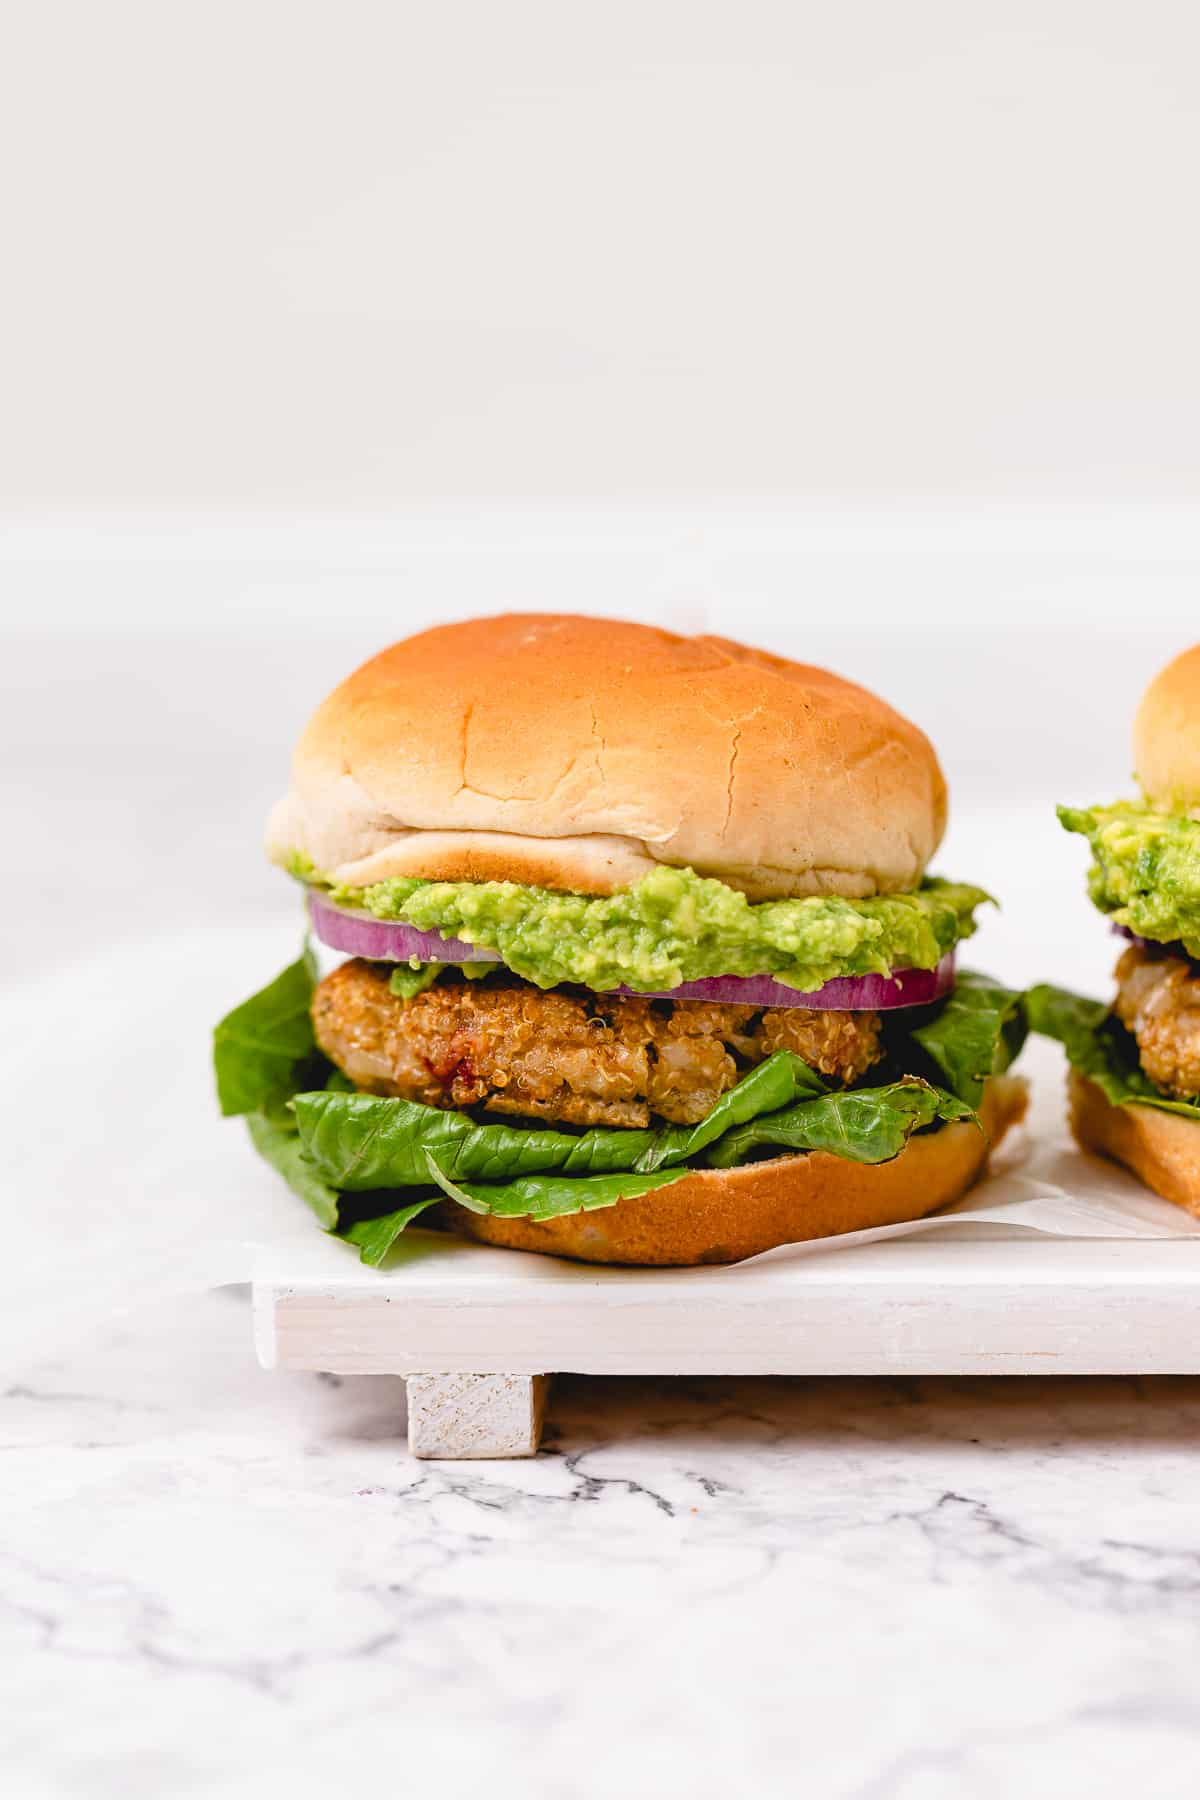 Two golden brown veggie burgers with avocado, red onion, and lettuce on fluffy vegan buns